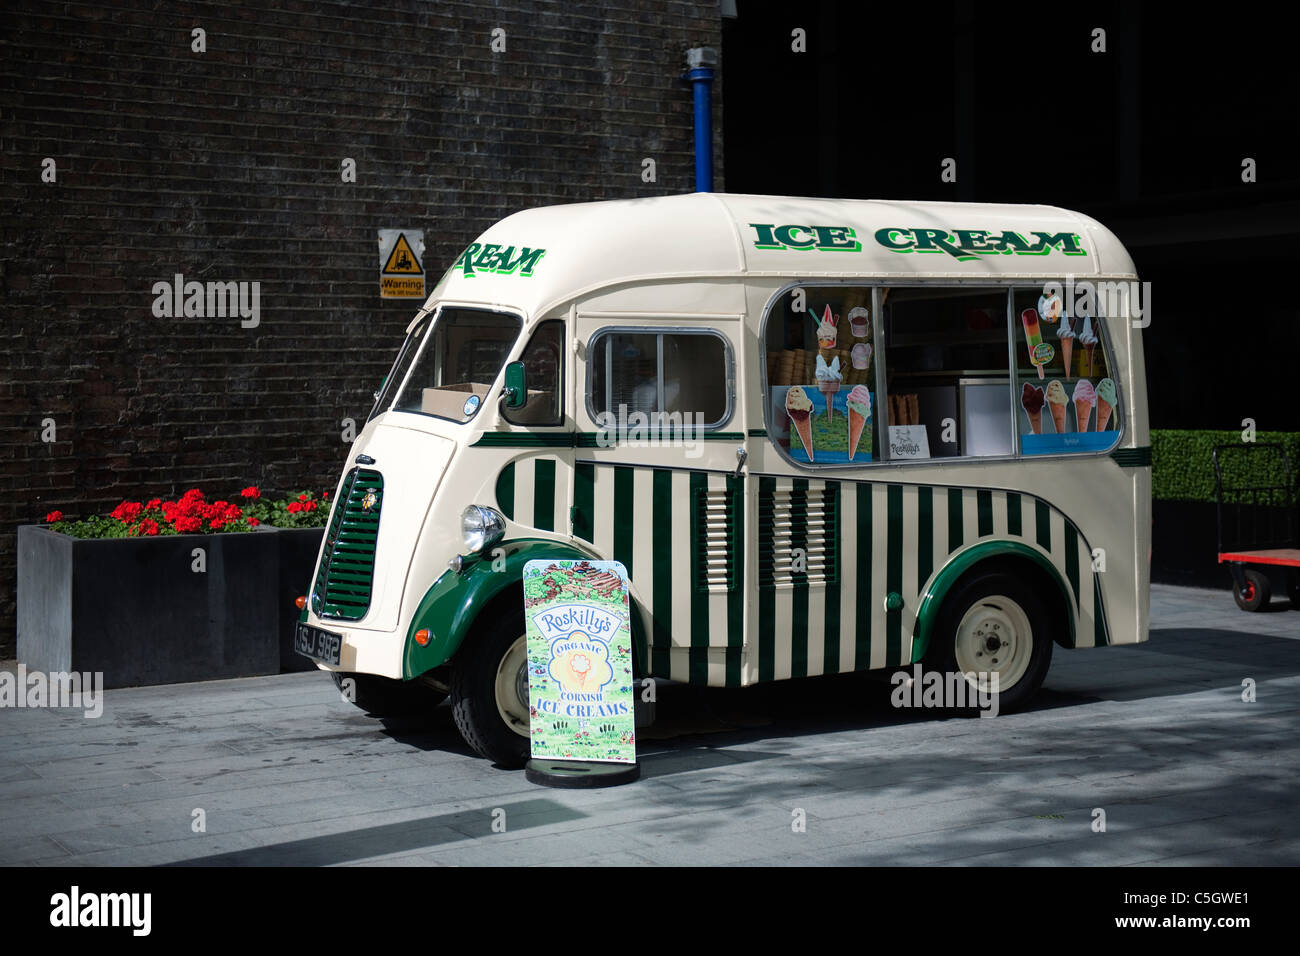 Ice Cream Van on The South Bank, London, UK - Stock Image